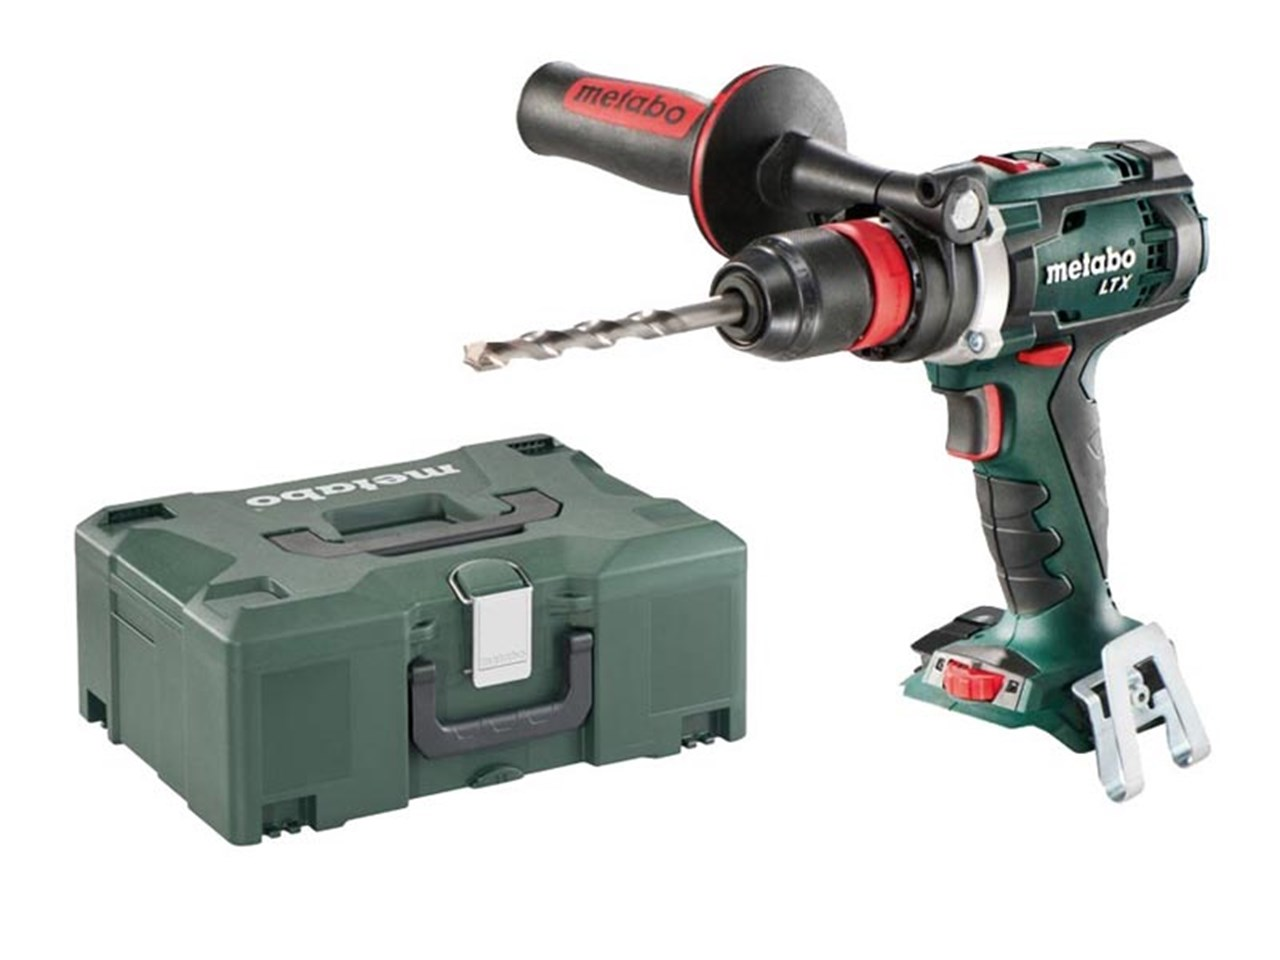 metabo bs18ltxquick 18v cordless drill driver bare unit and metaloc. Black Bedroom Furniture Sets. Home Design Ideas